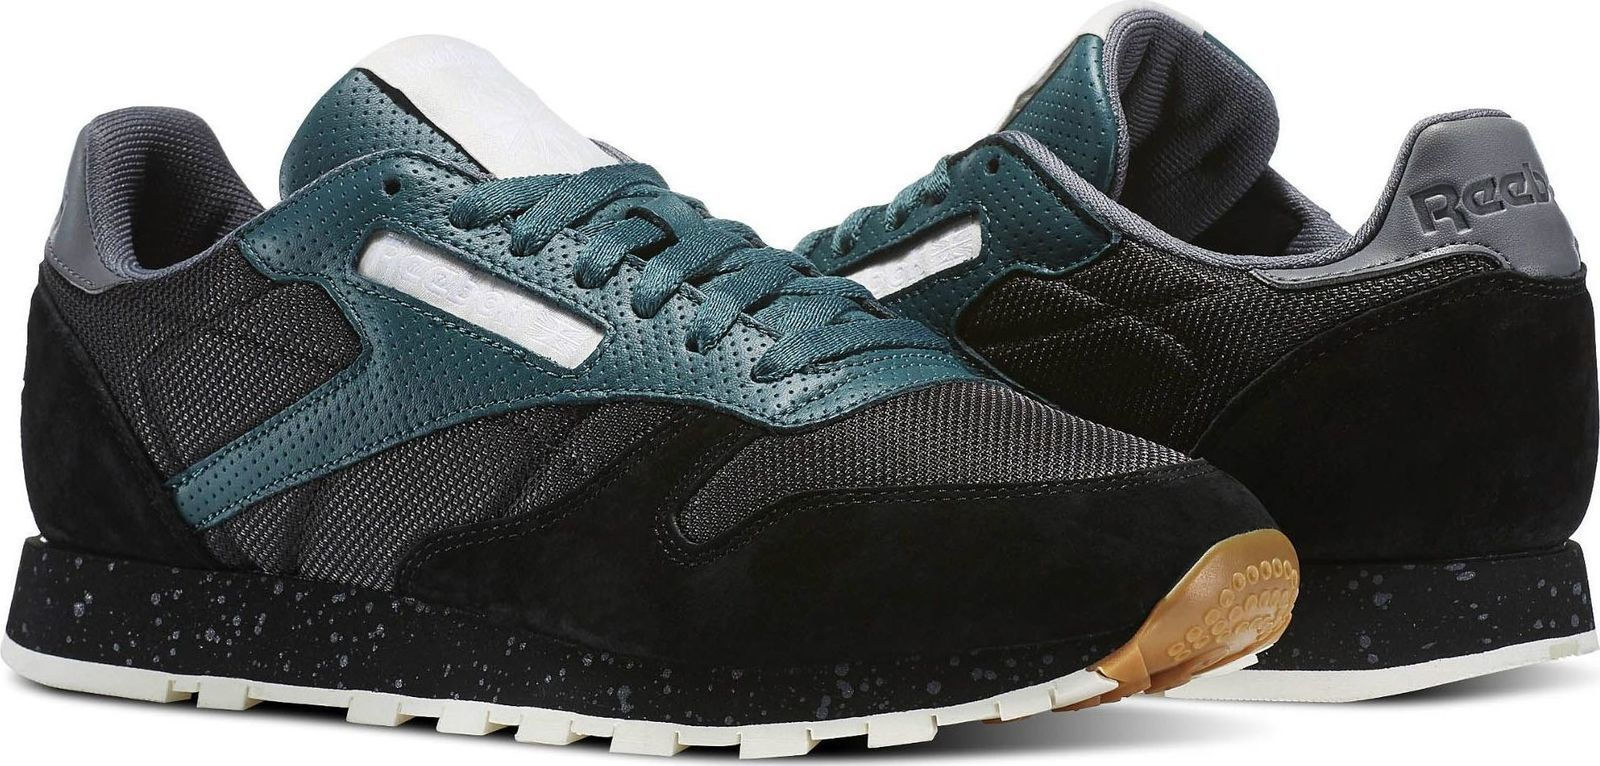 d1f7db0141b Reebok Leather Urban Descent BS5229 - Skroutz.gr